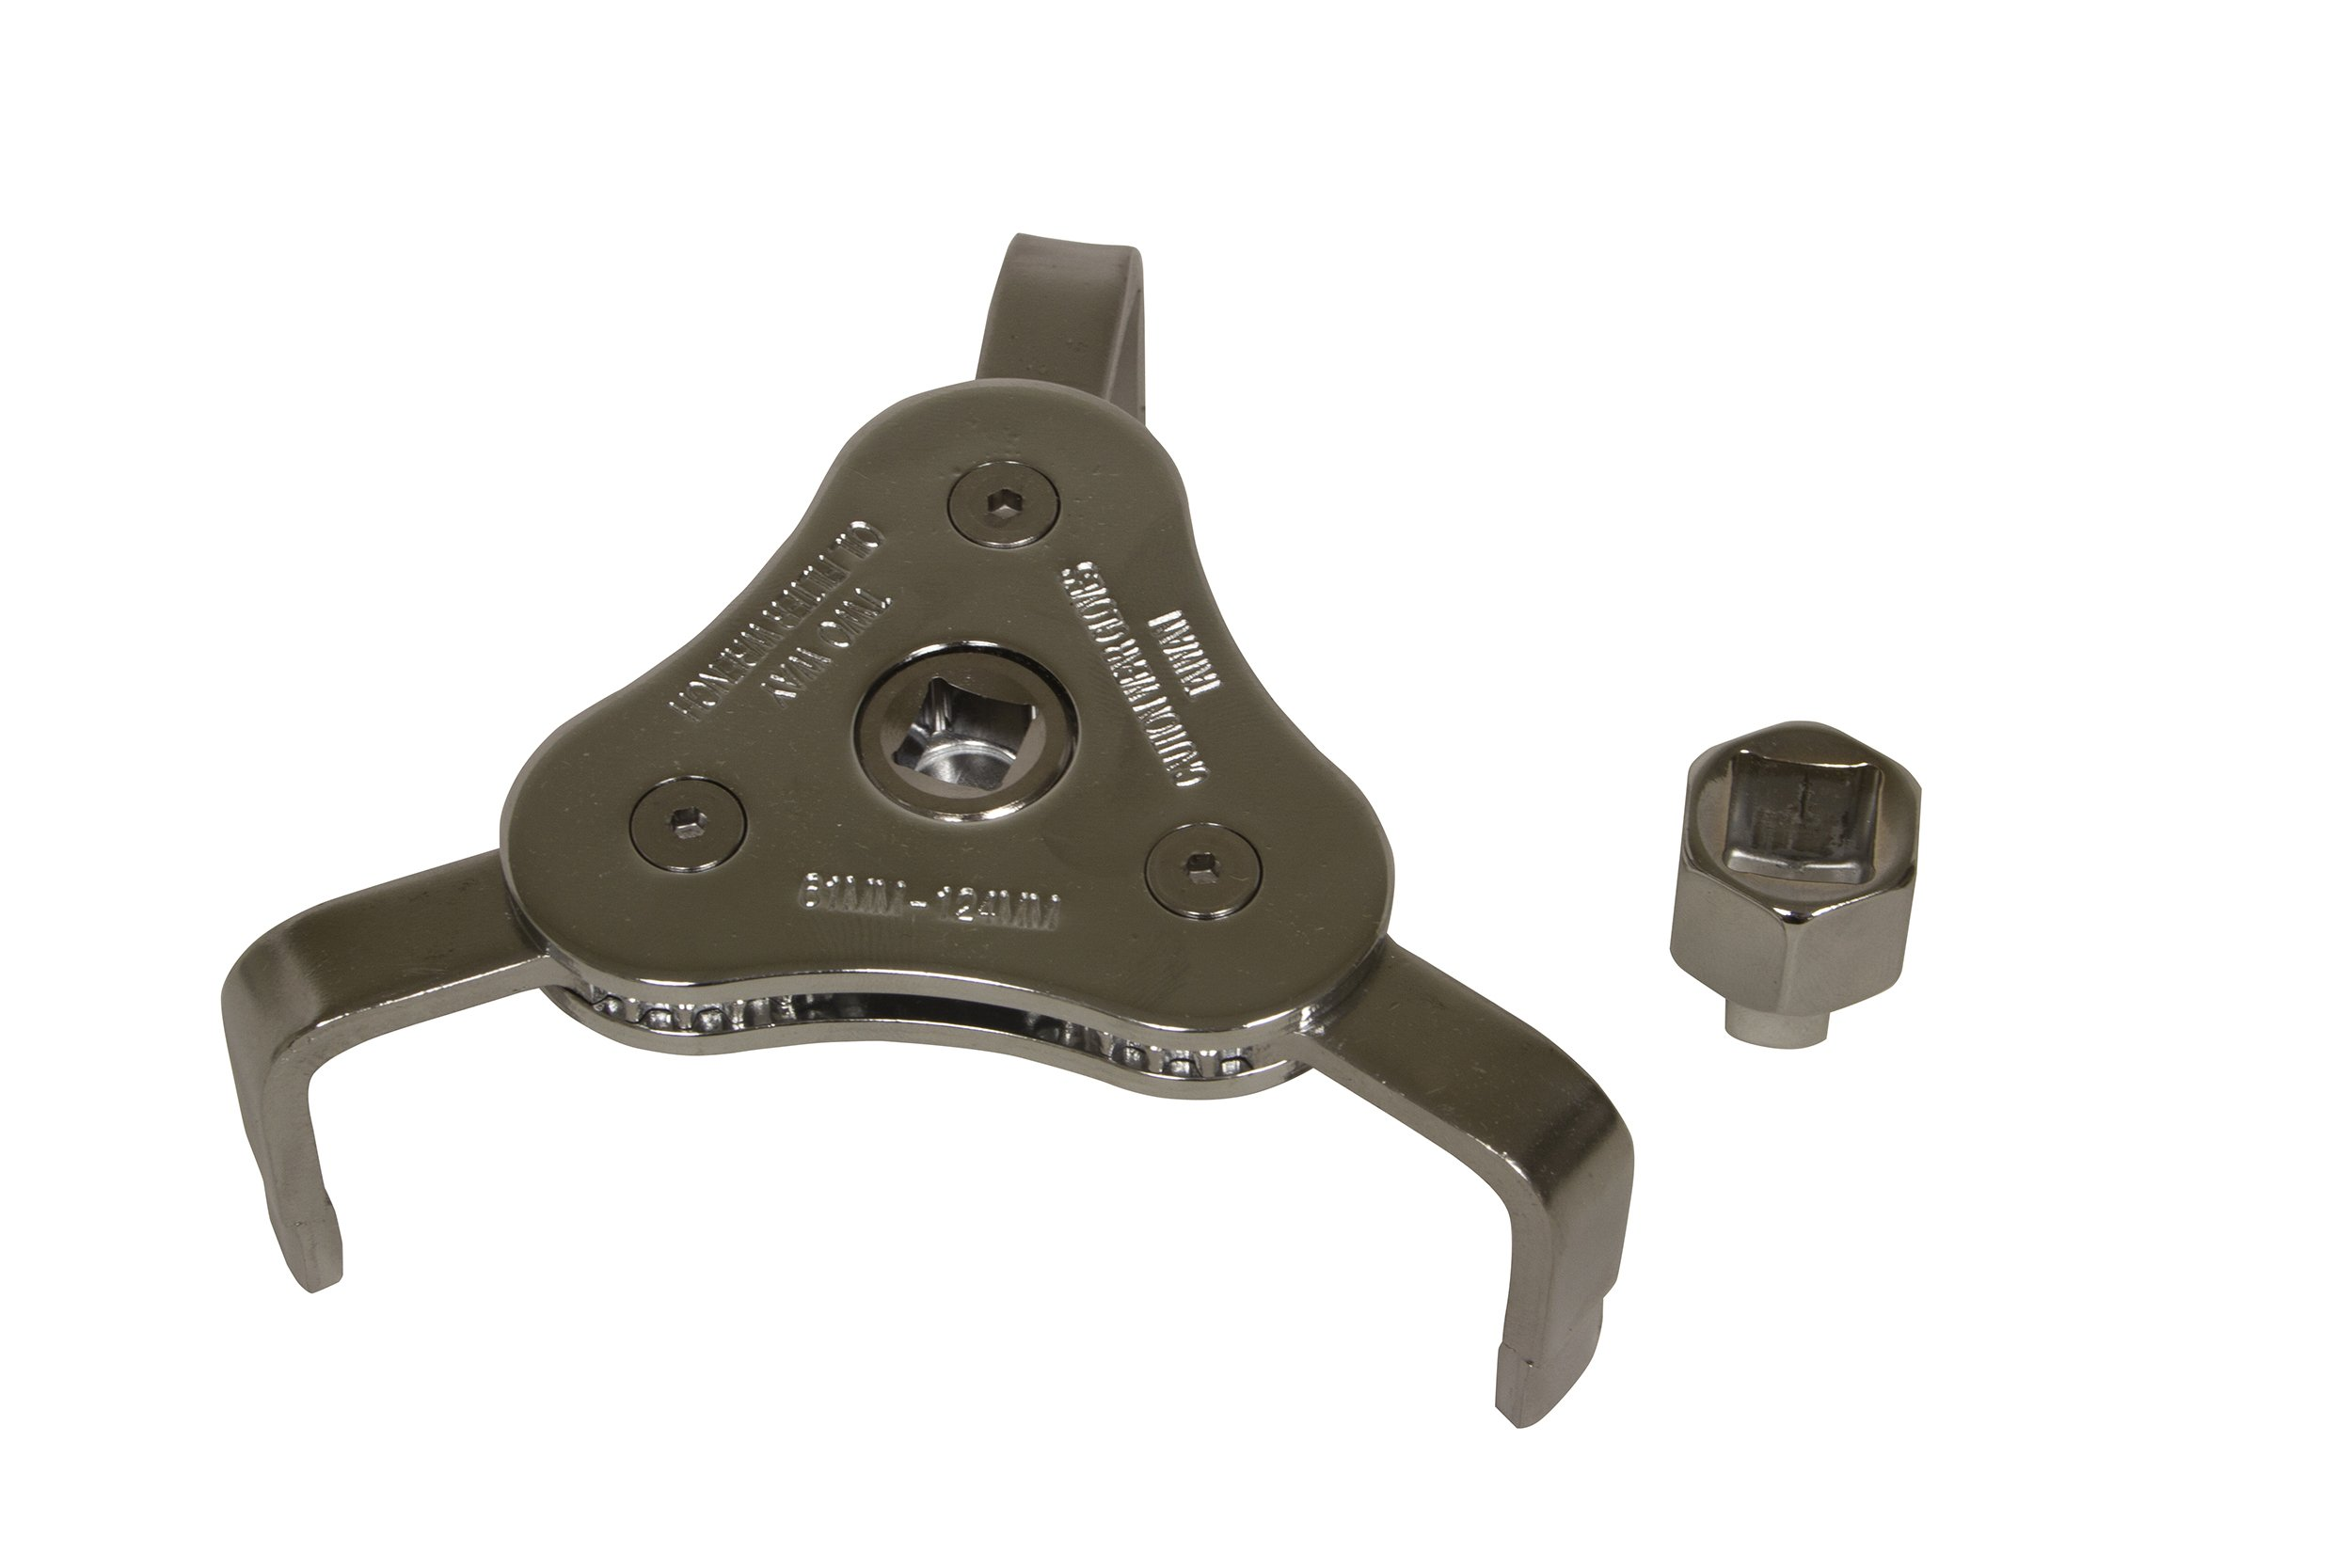 Lisle 63830 61-124mm 3 Jaw Wrench & Adapter